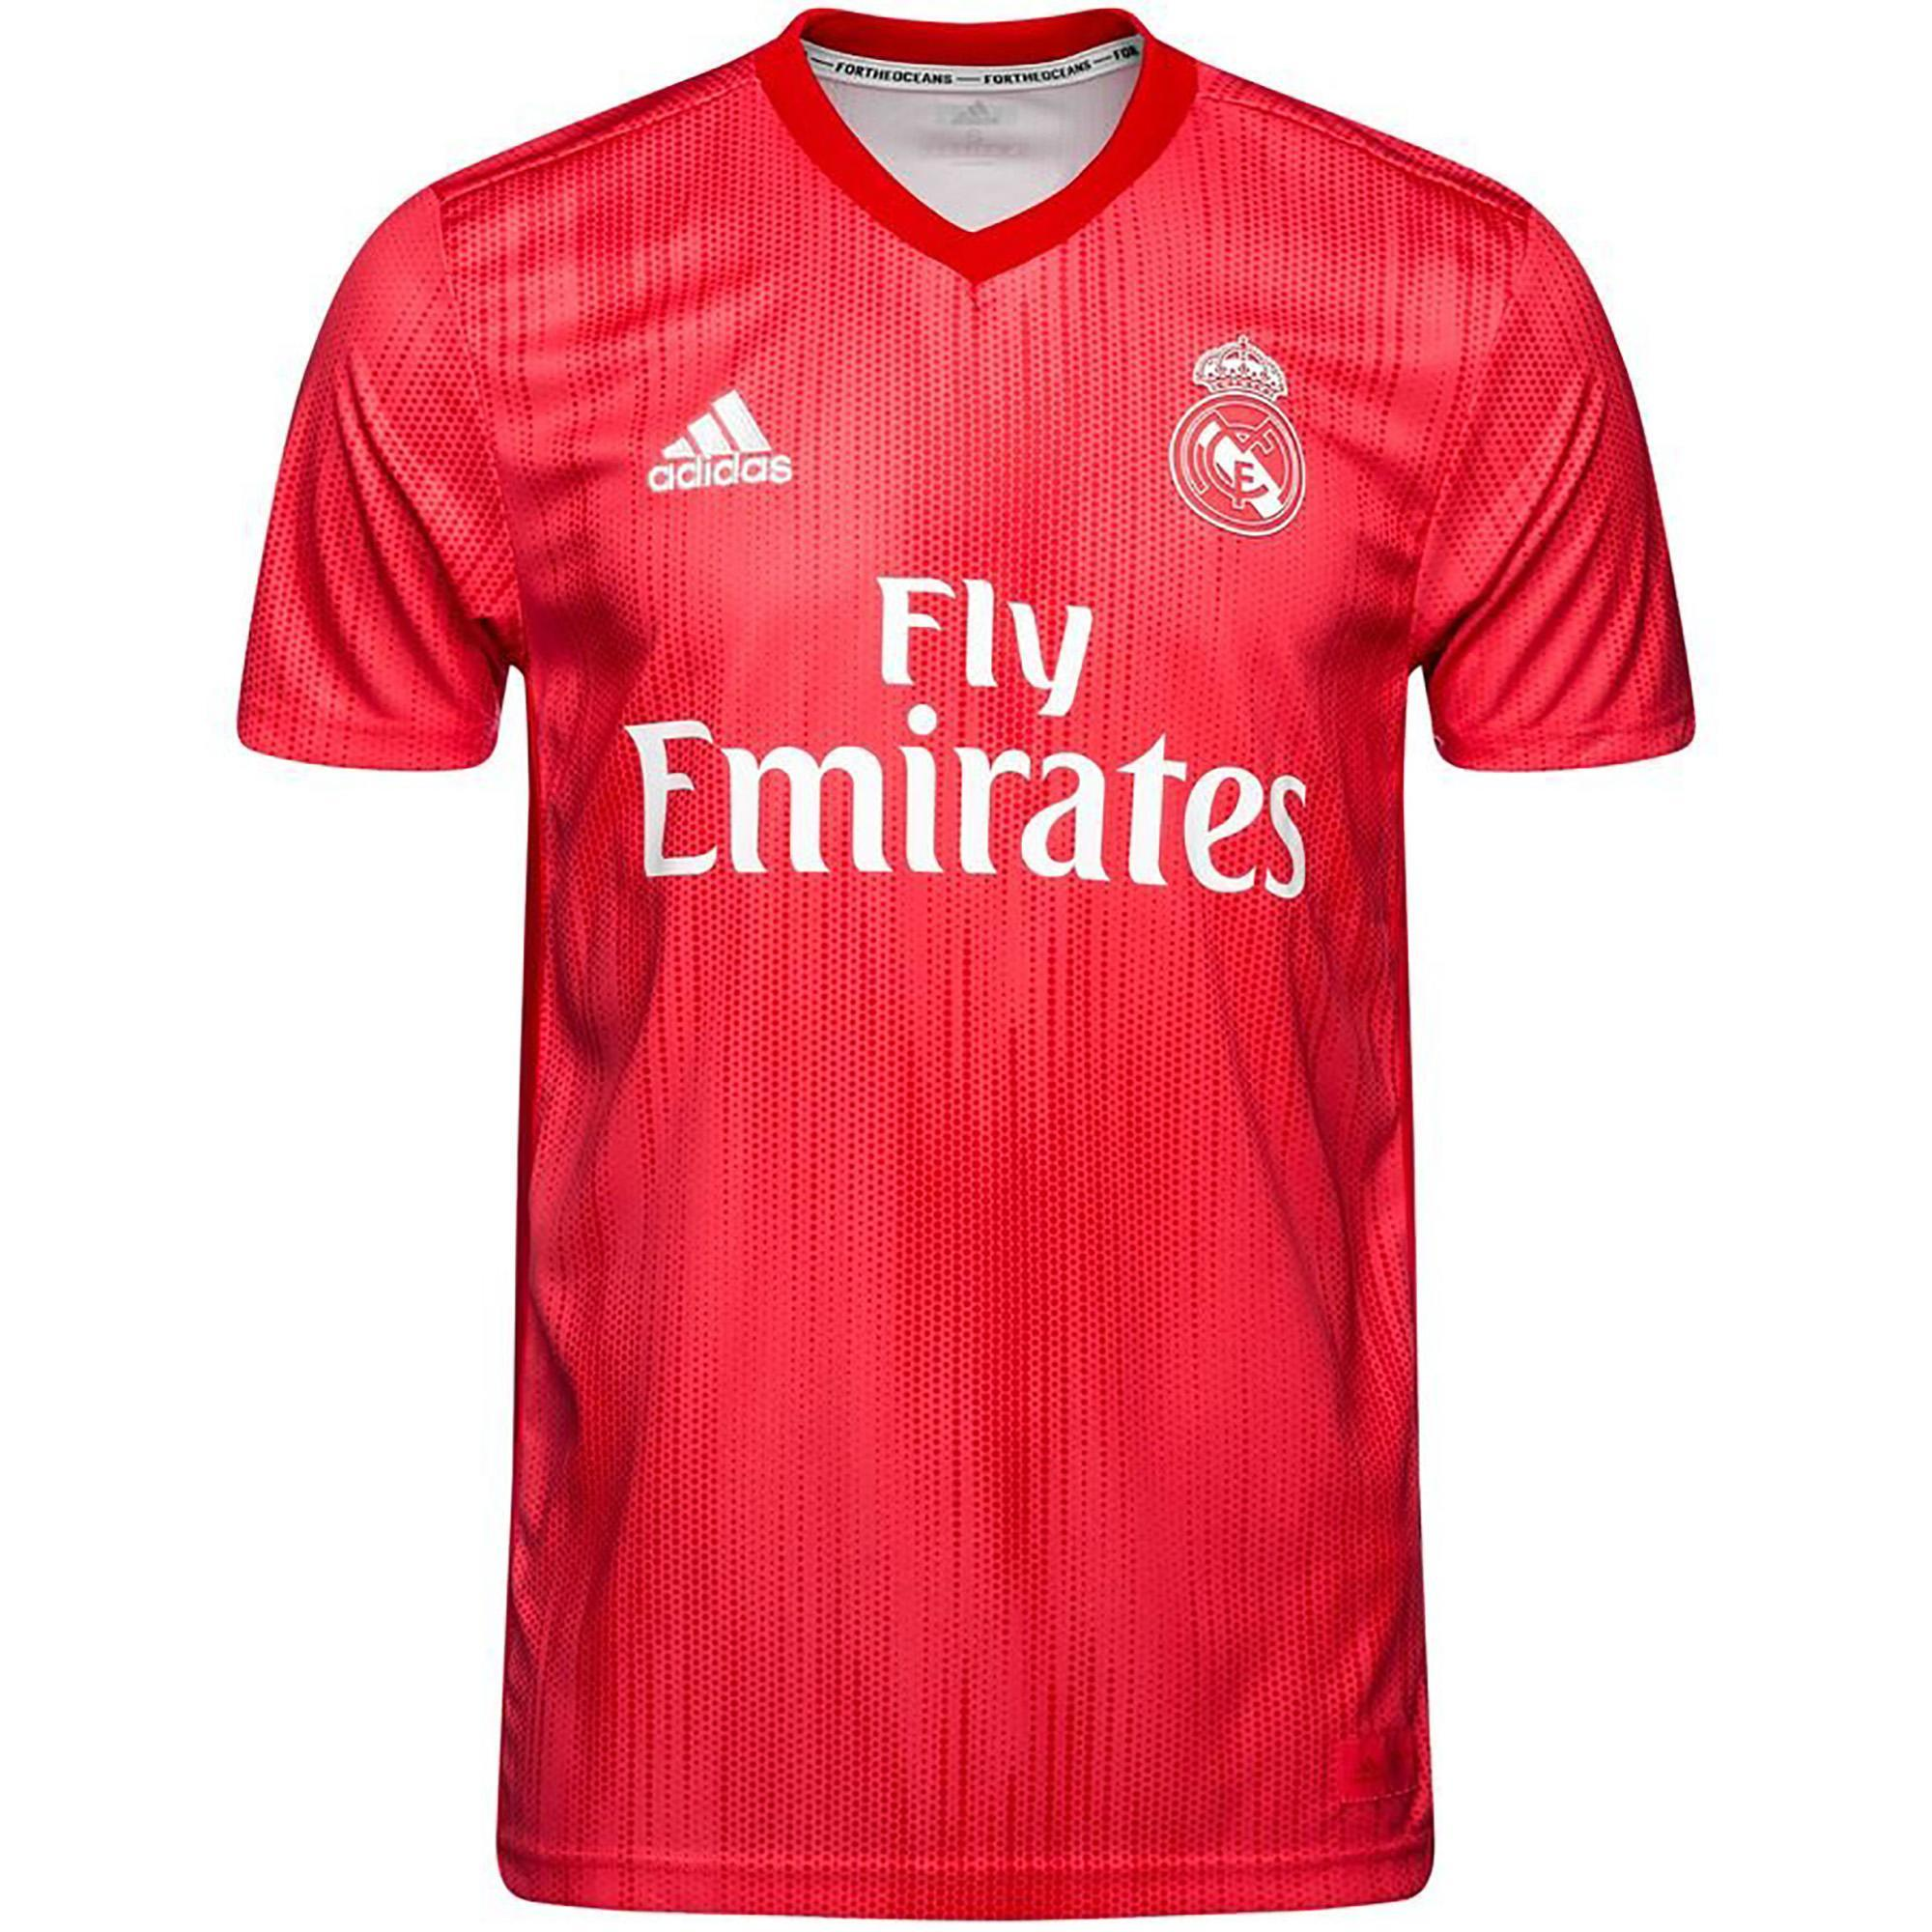 6631cd37218d8 Camiseta réplica de fútbol adulto Real Madrid third Adidas